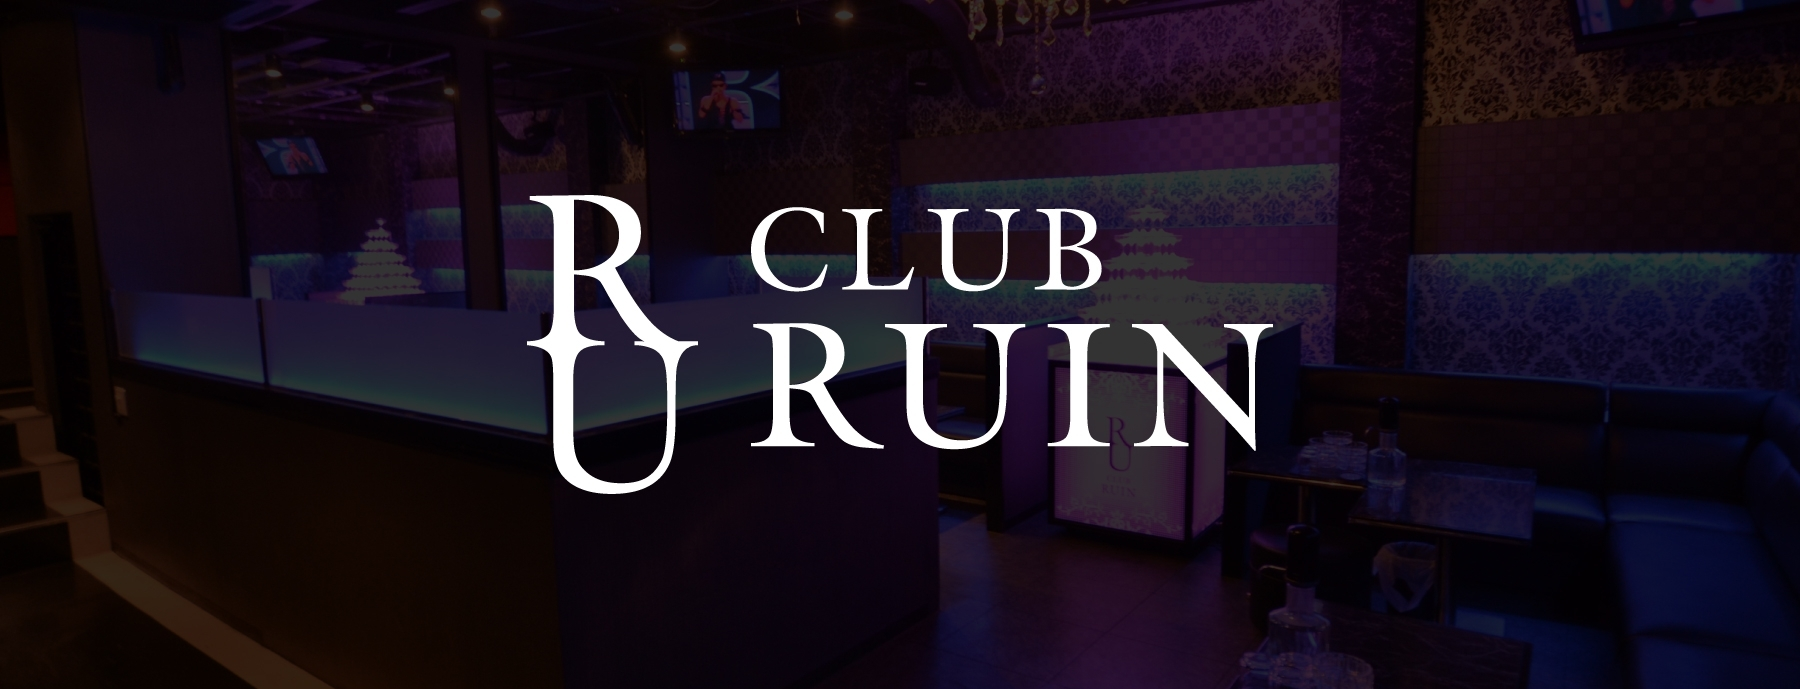 CLUB RUIN~ルイン~